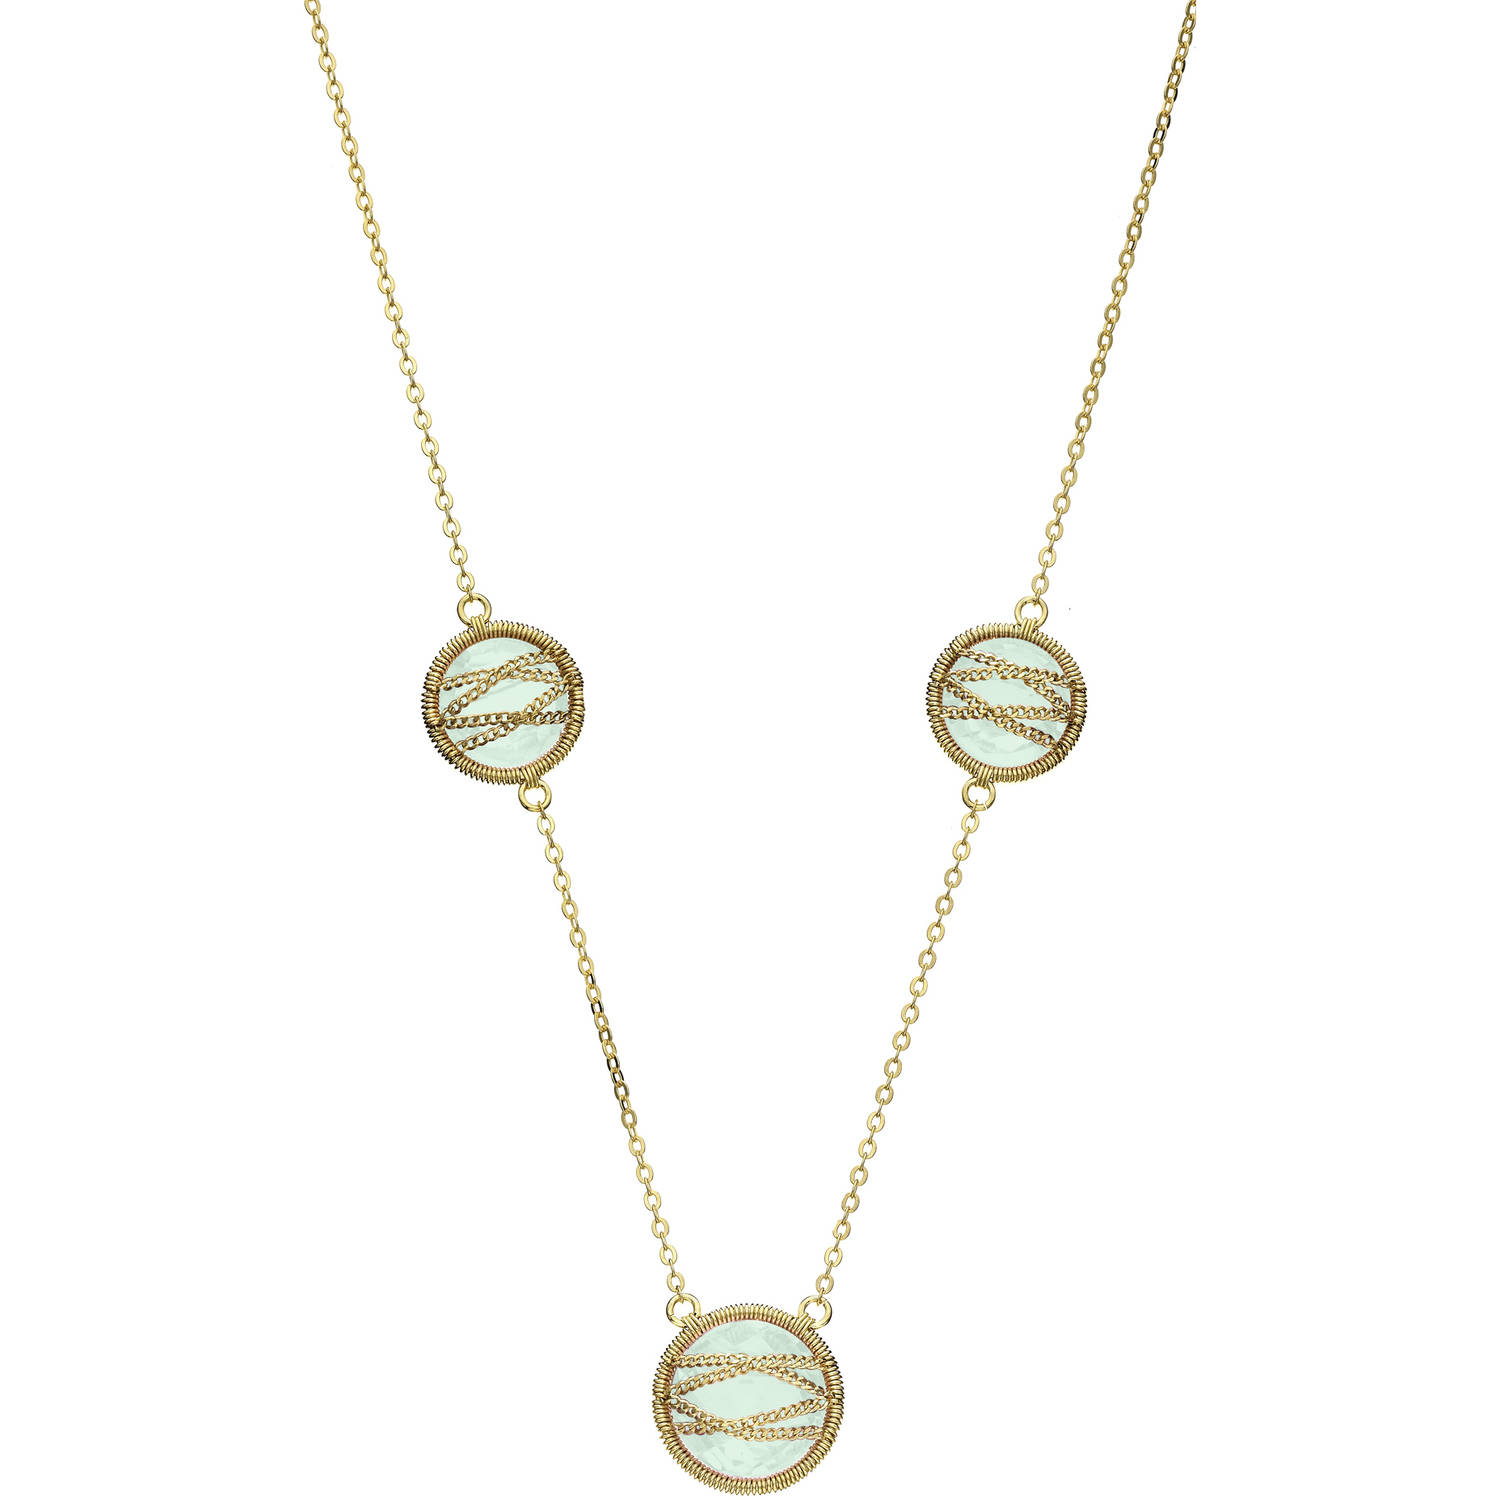 5th & Main 18kt Gold over Sterling Silver Hand-Wrapped Triple Round Chalcedony Stone Necklace by Generic